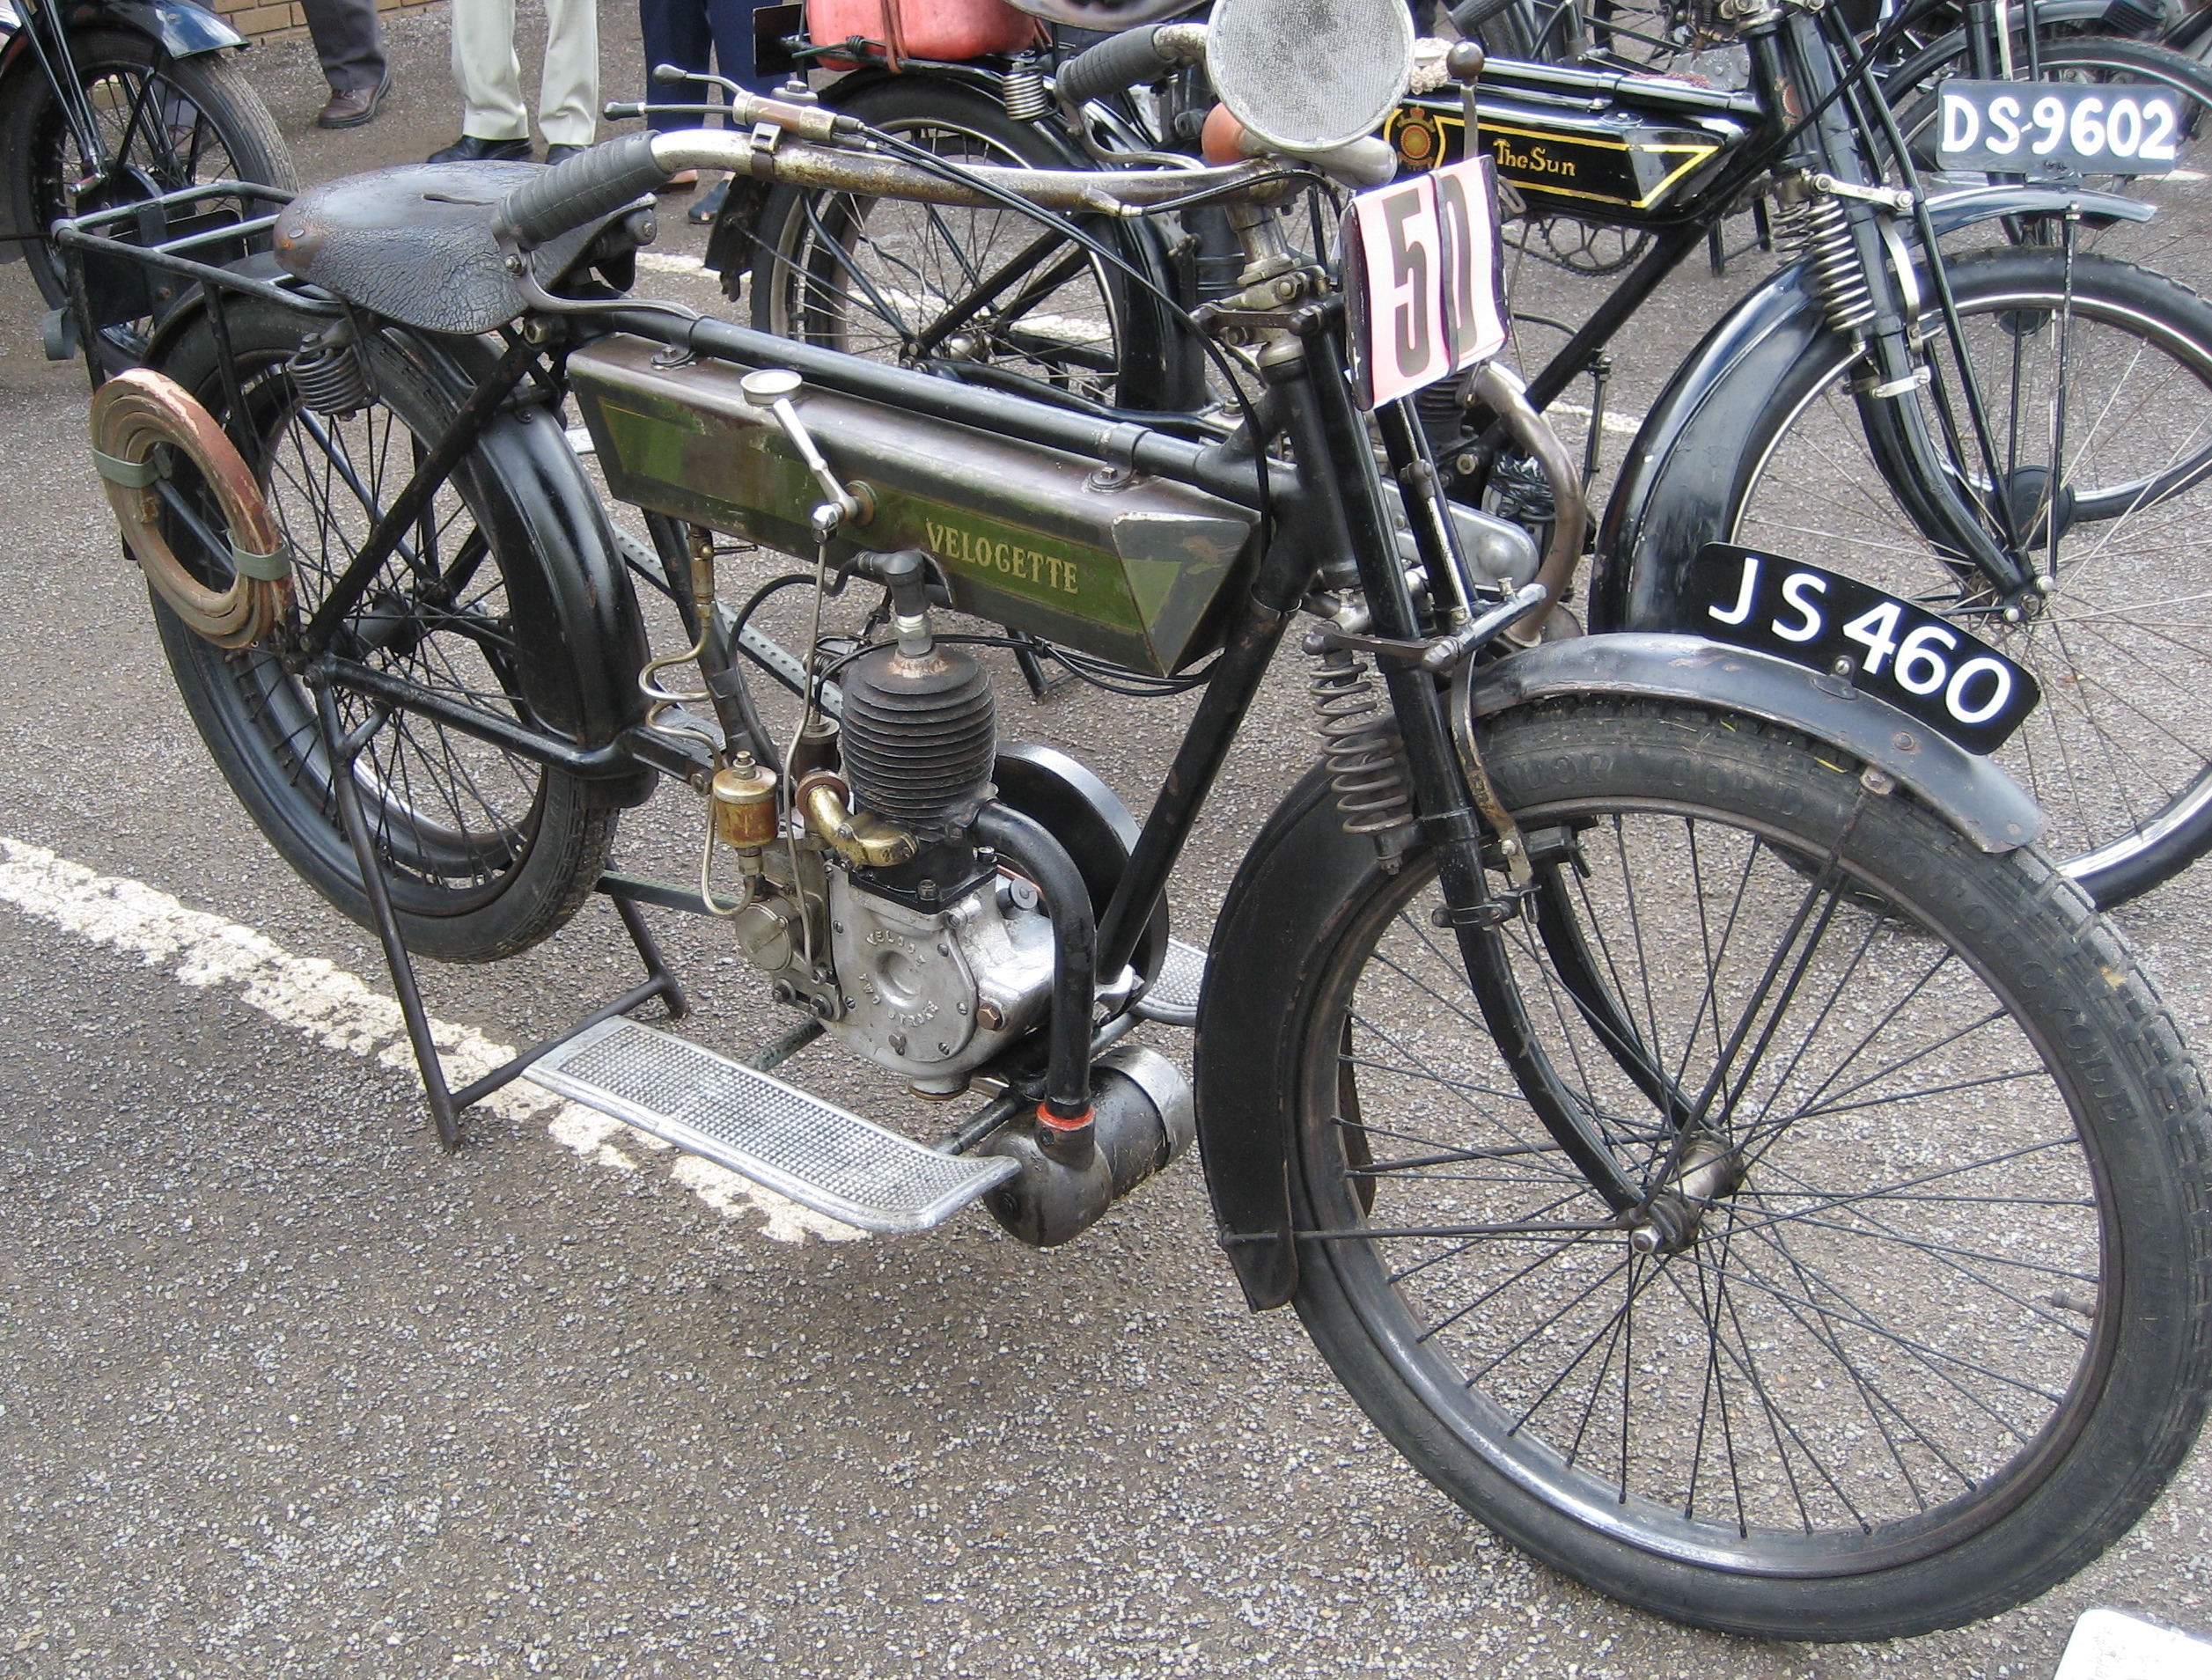 Velocette Owners Club - Dorking Centre - Two-Stroke ... on